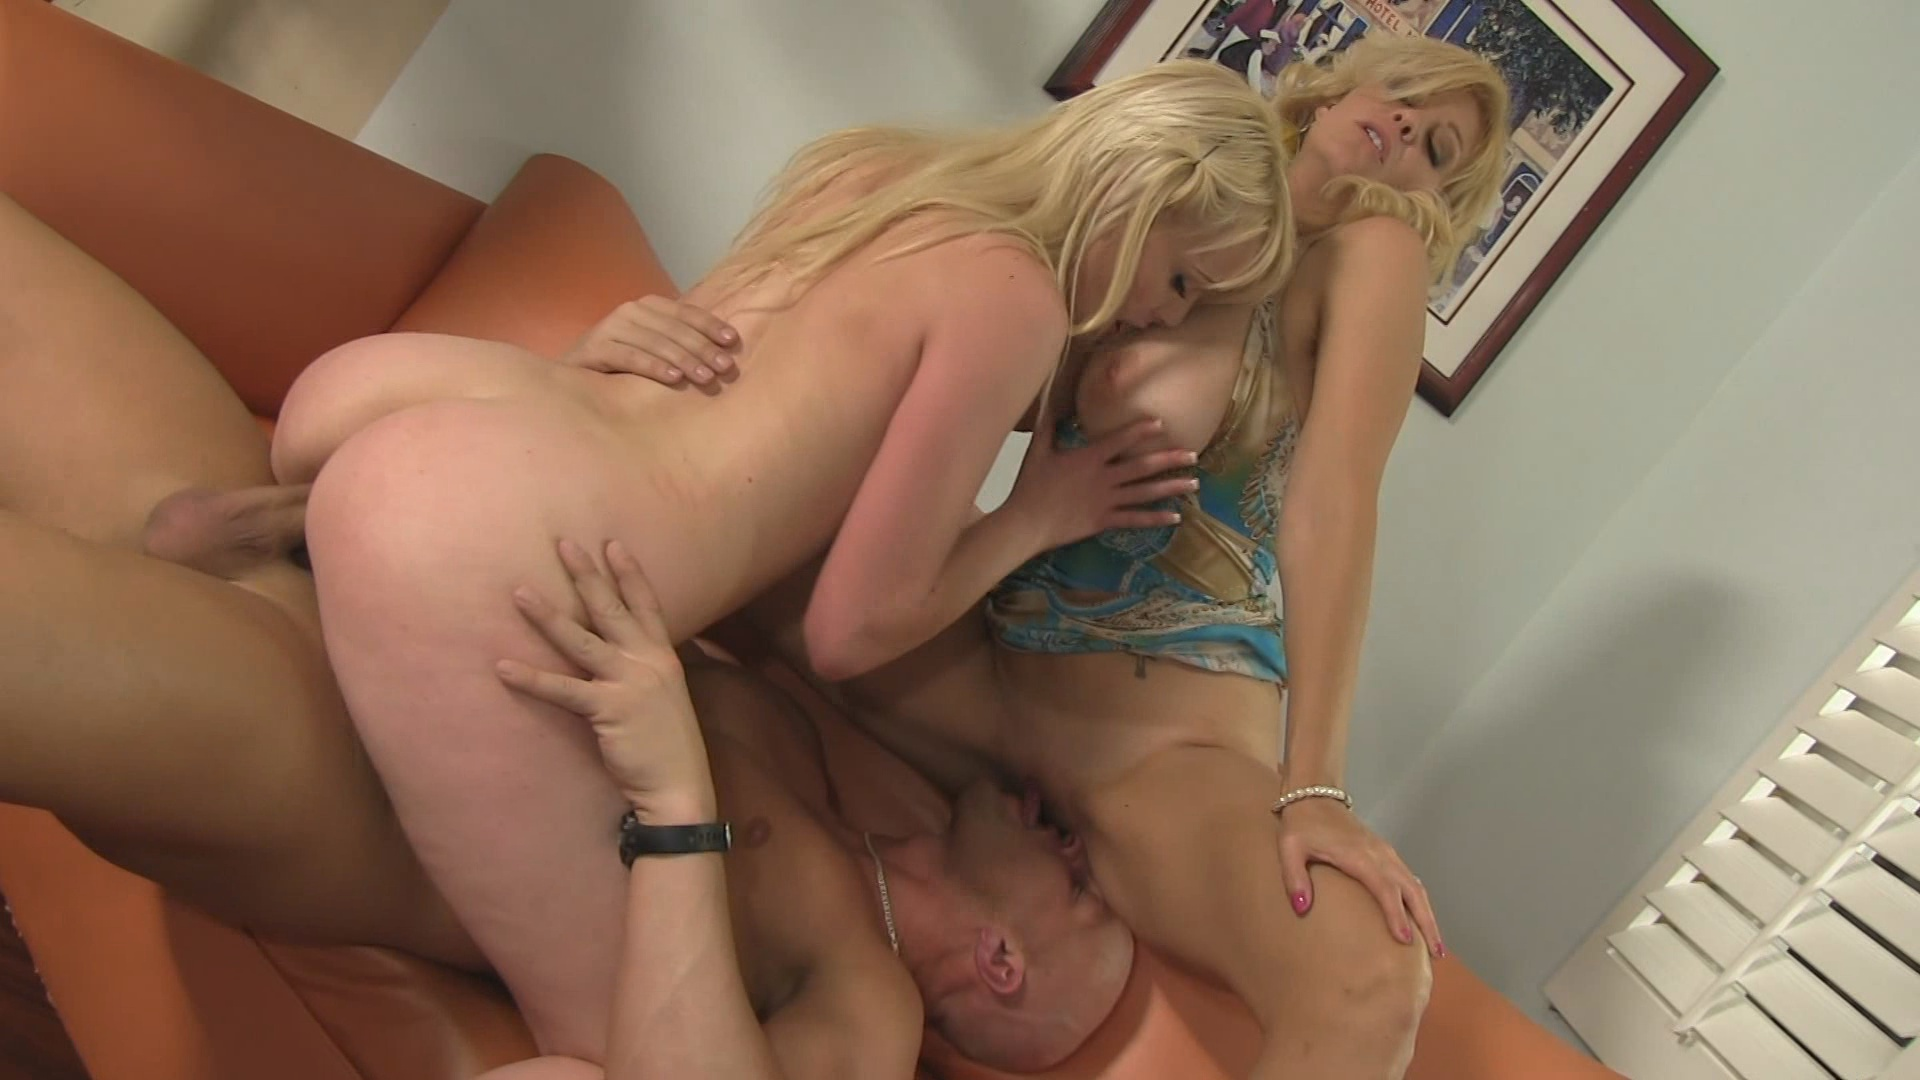 Couples Bang The Babysitter 9